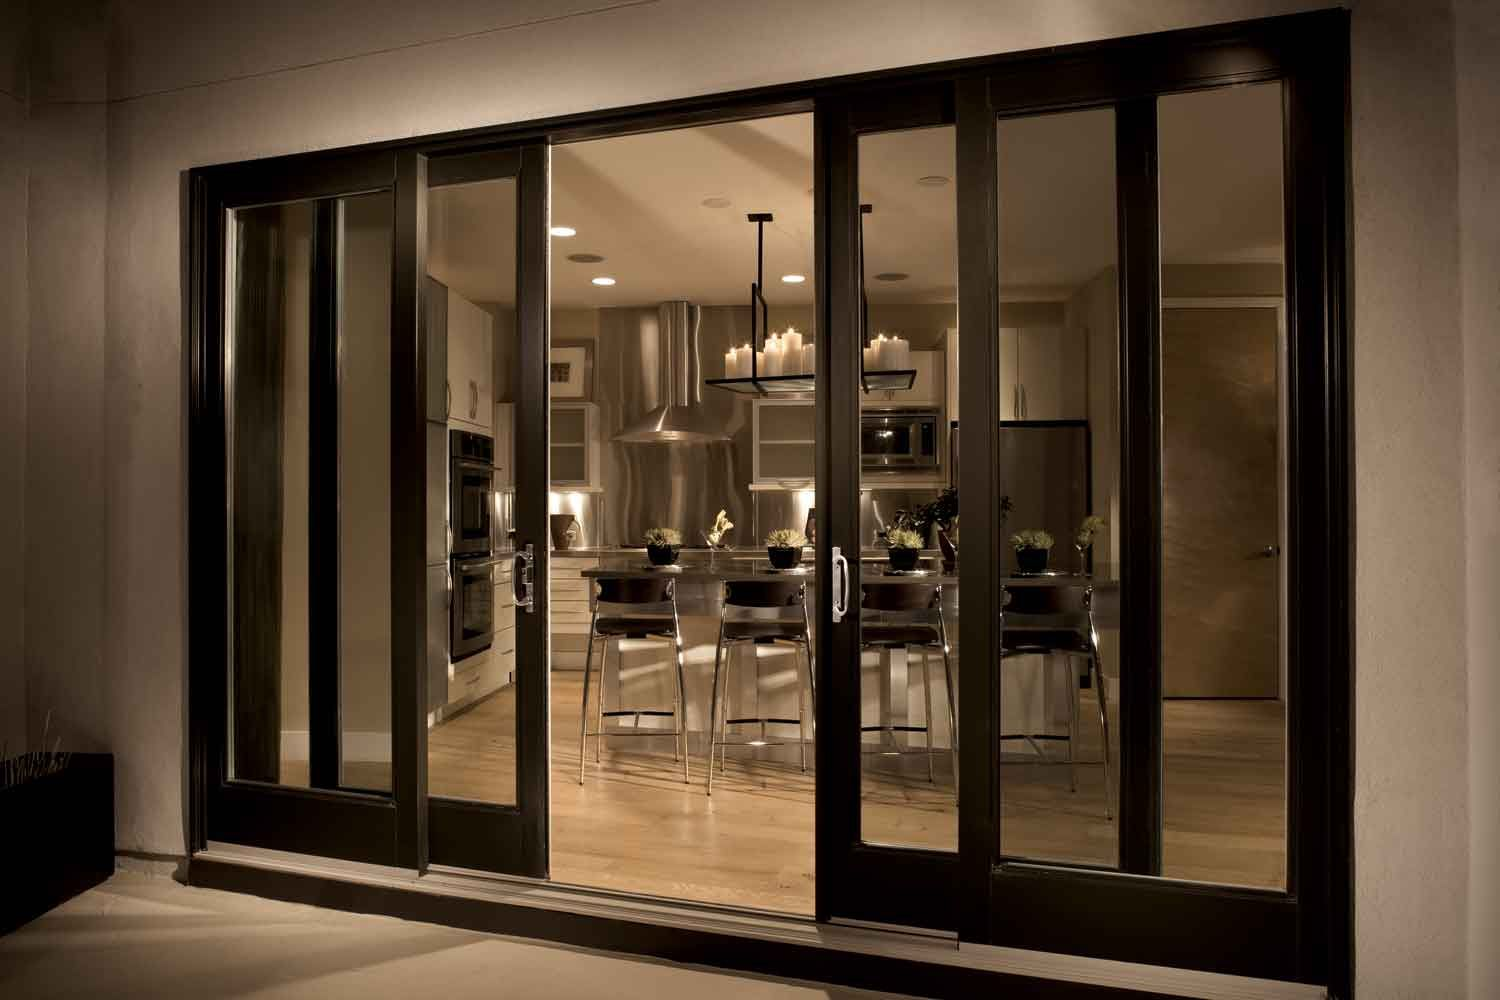 Fiberglass Sliding Patio Doors, 2, 3 or 4 panel configurations ...